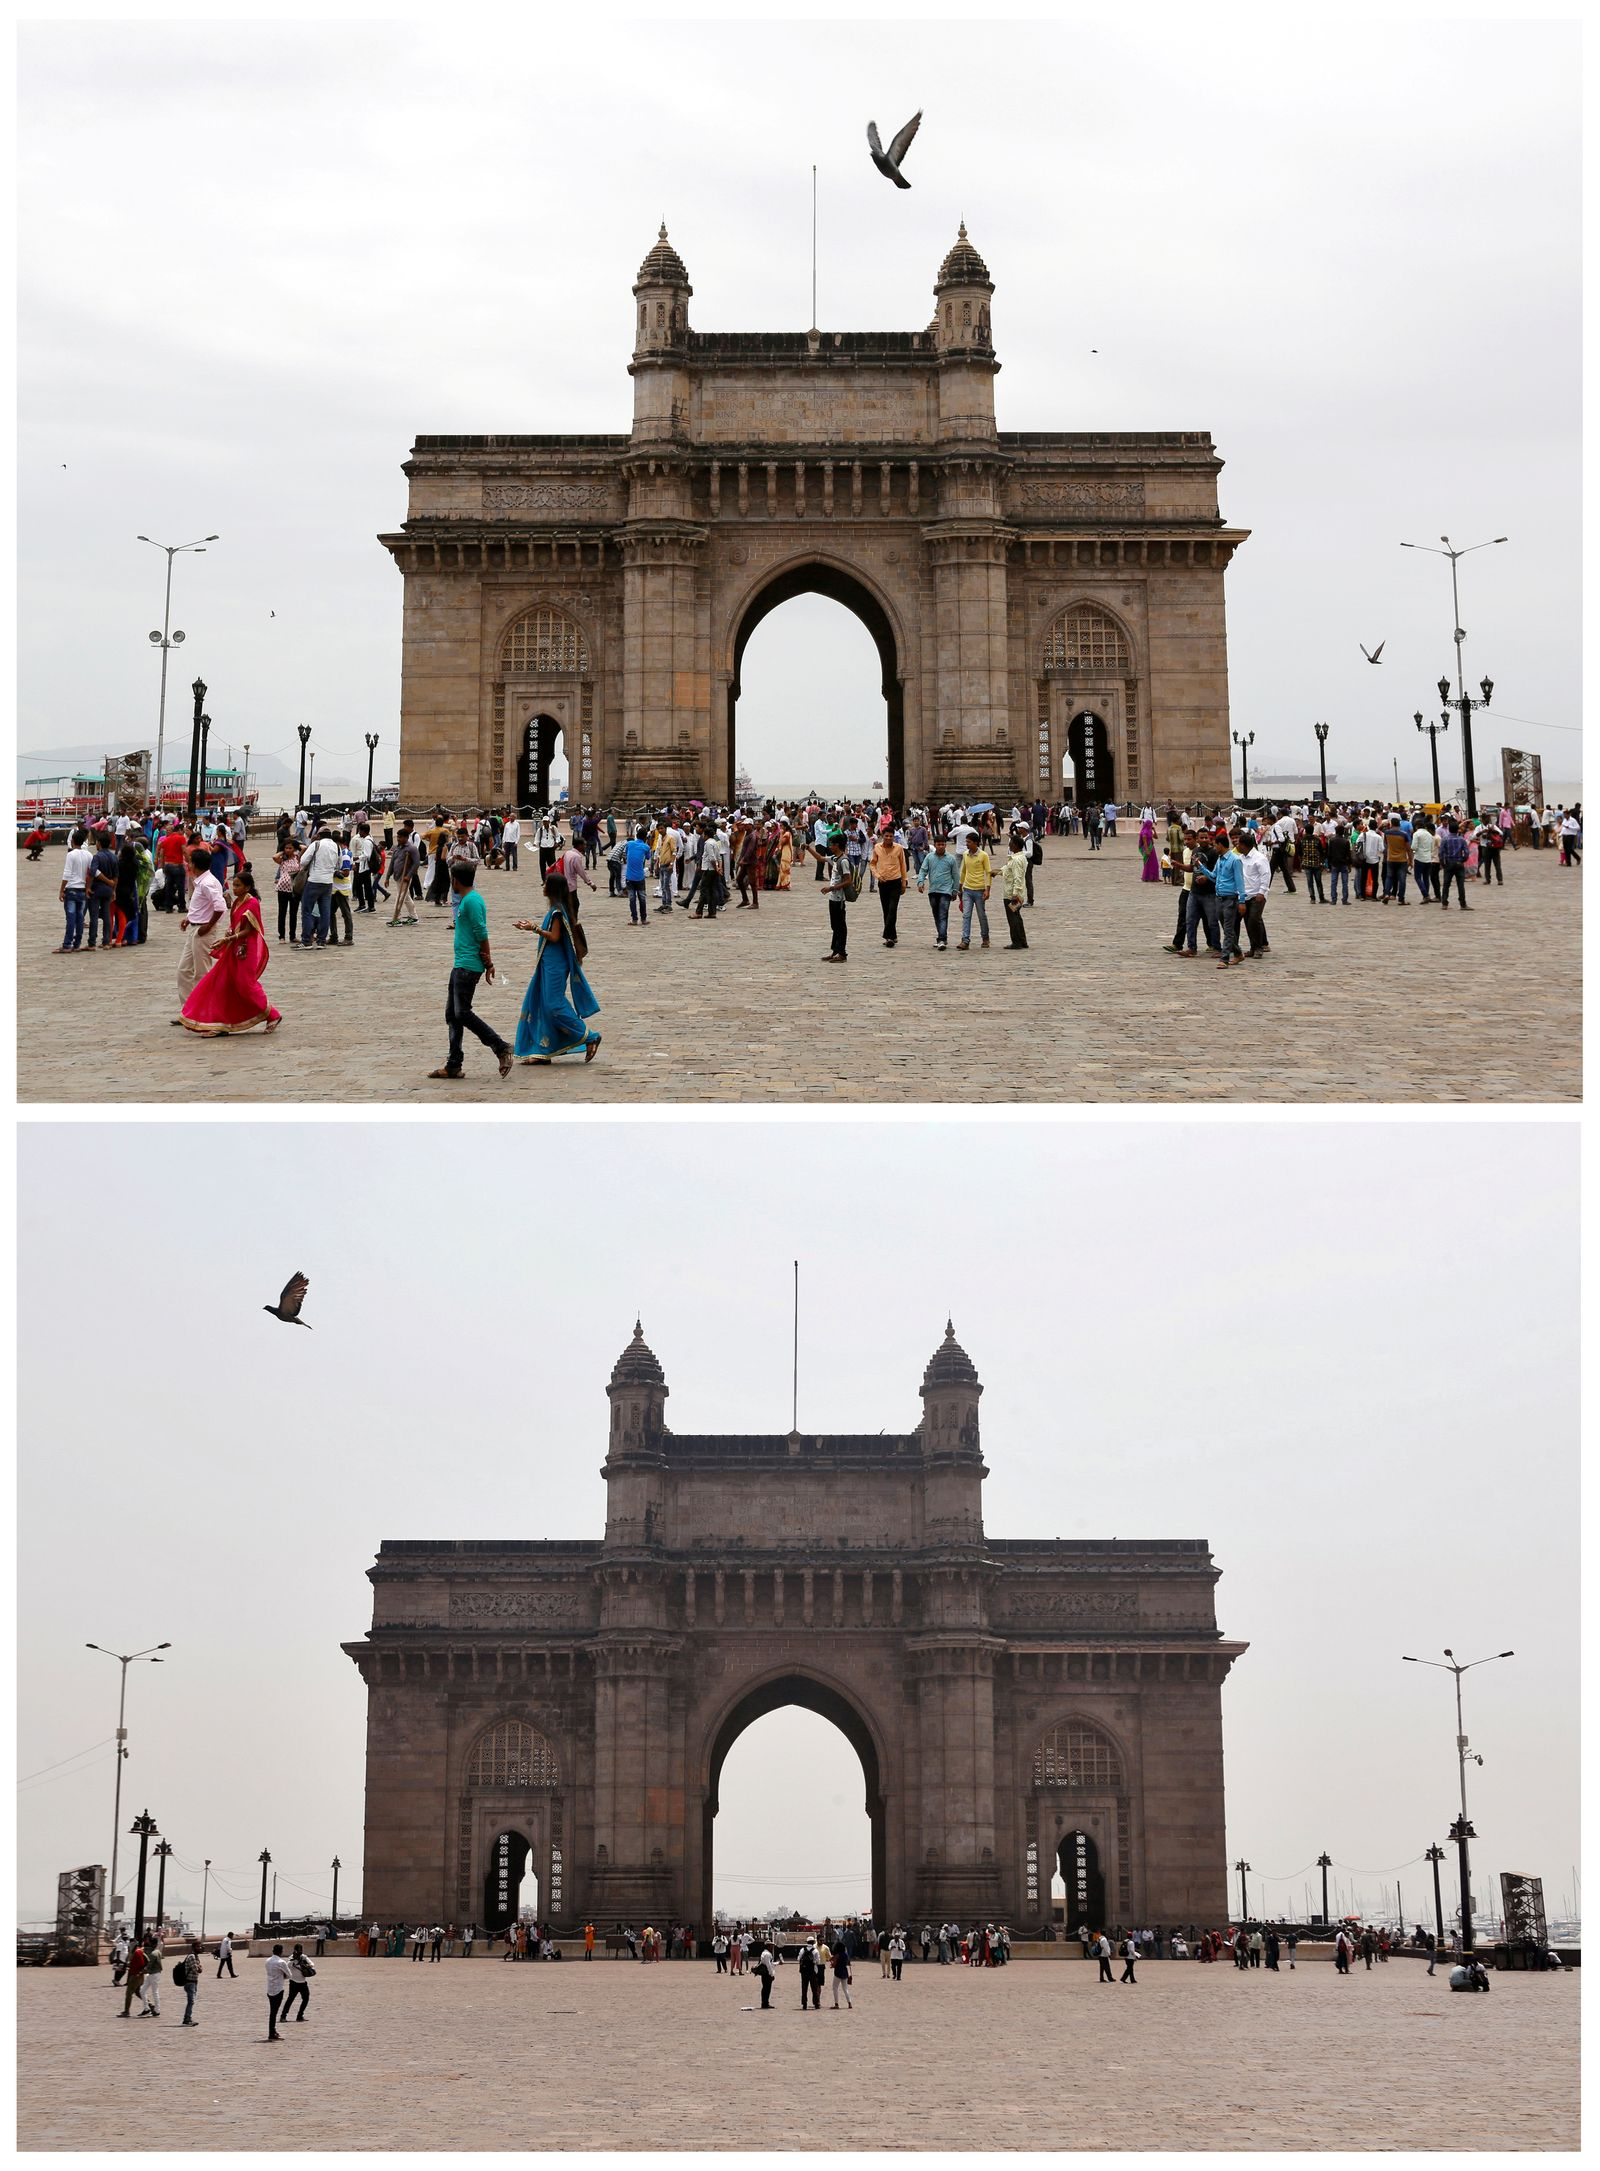 A combination picture shows the Gateway of India